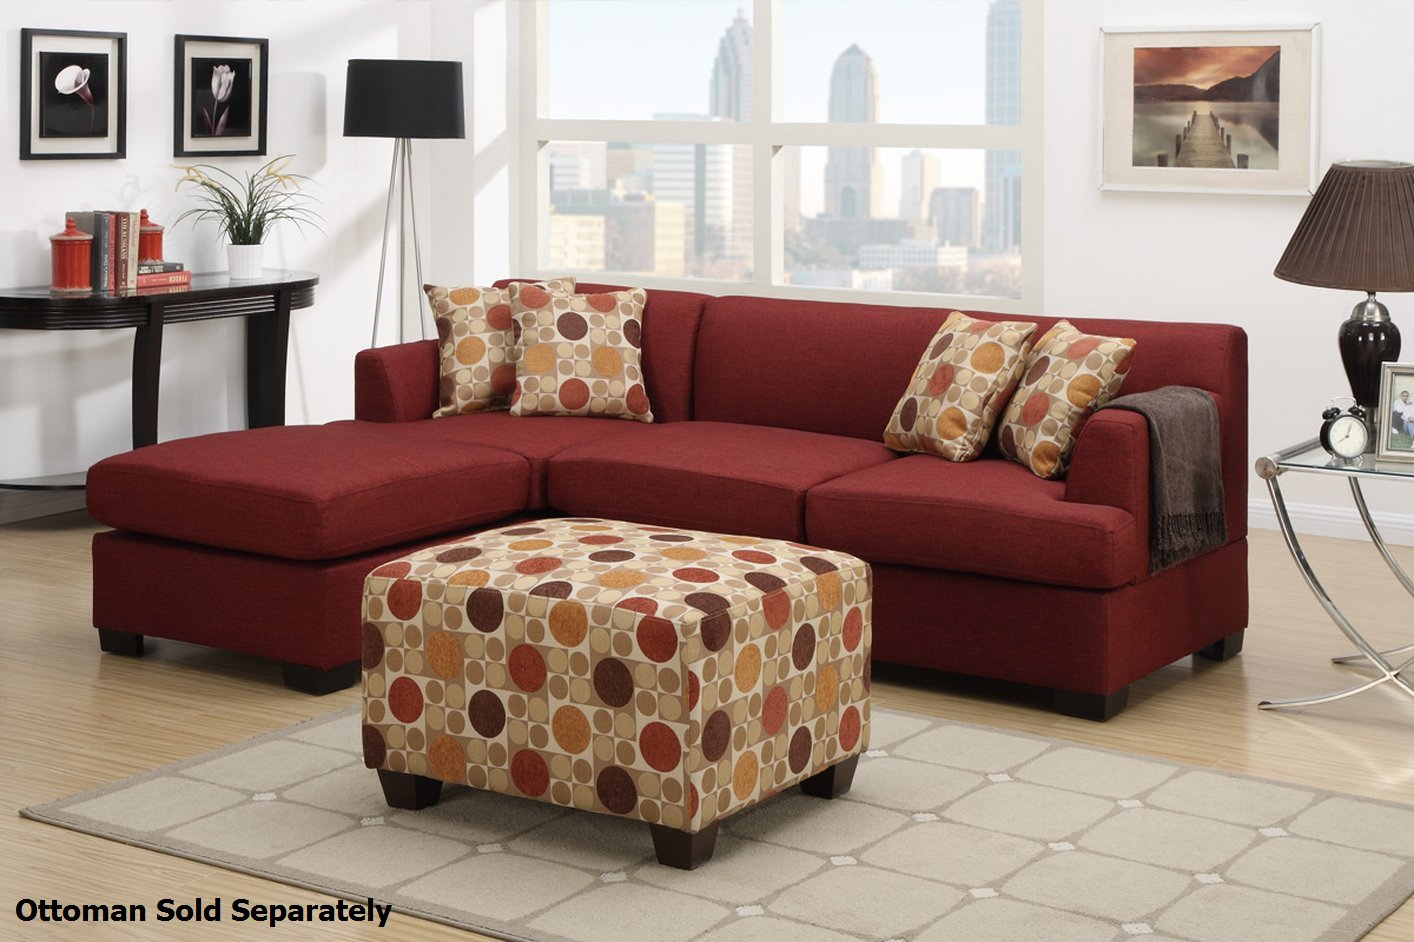 montreal sectional sofa extra large corner beds poundex ii f7961 f7962 red fabric